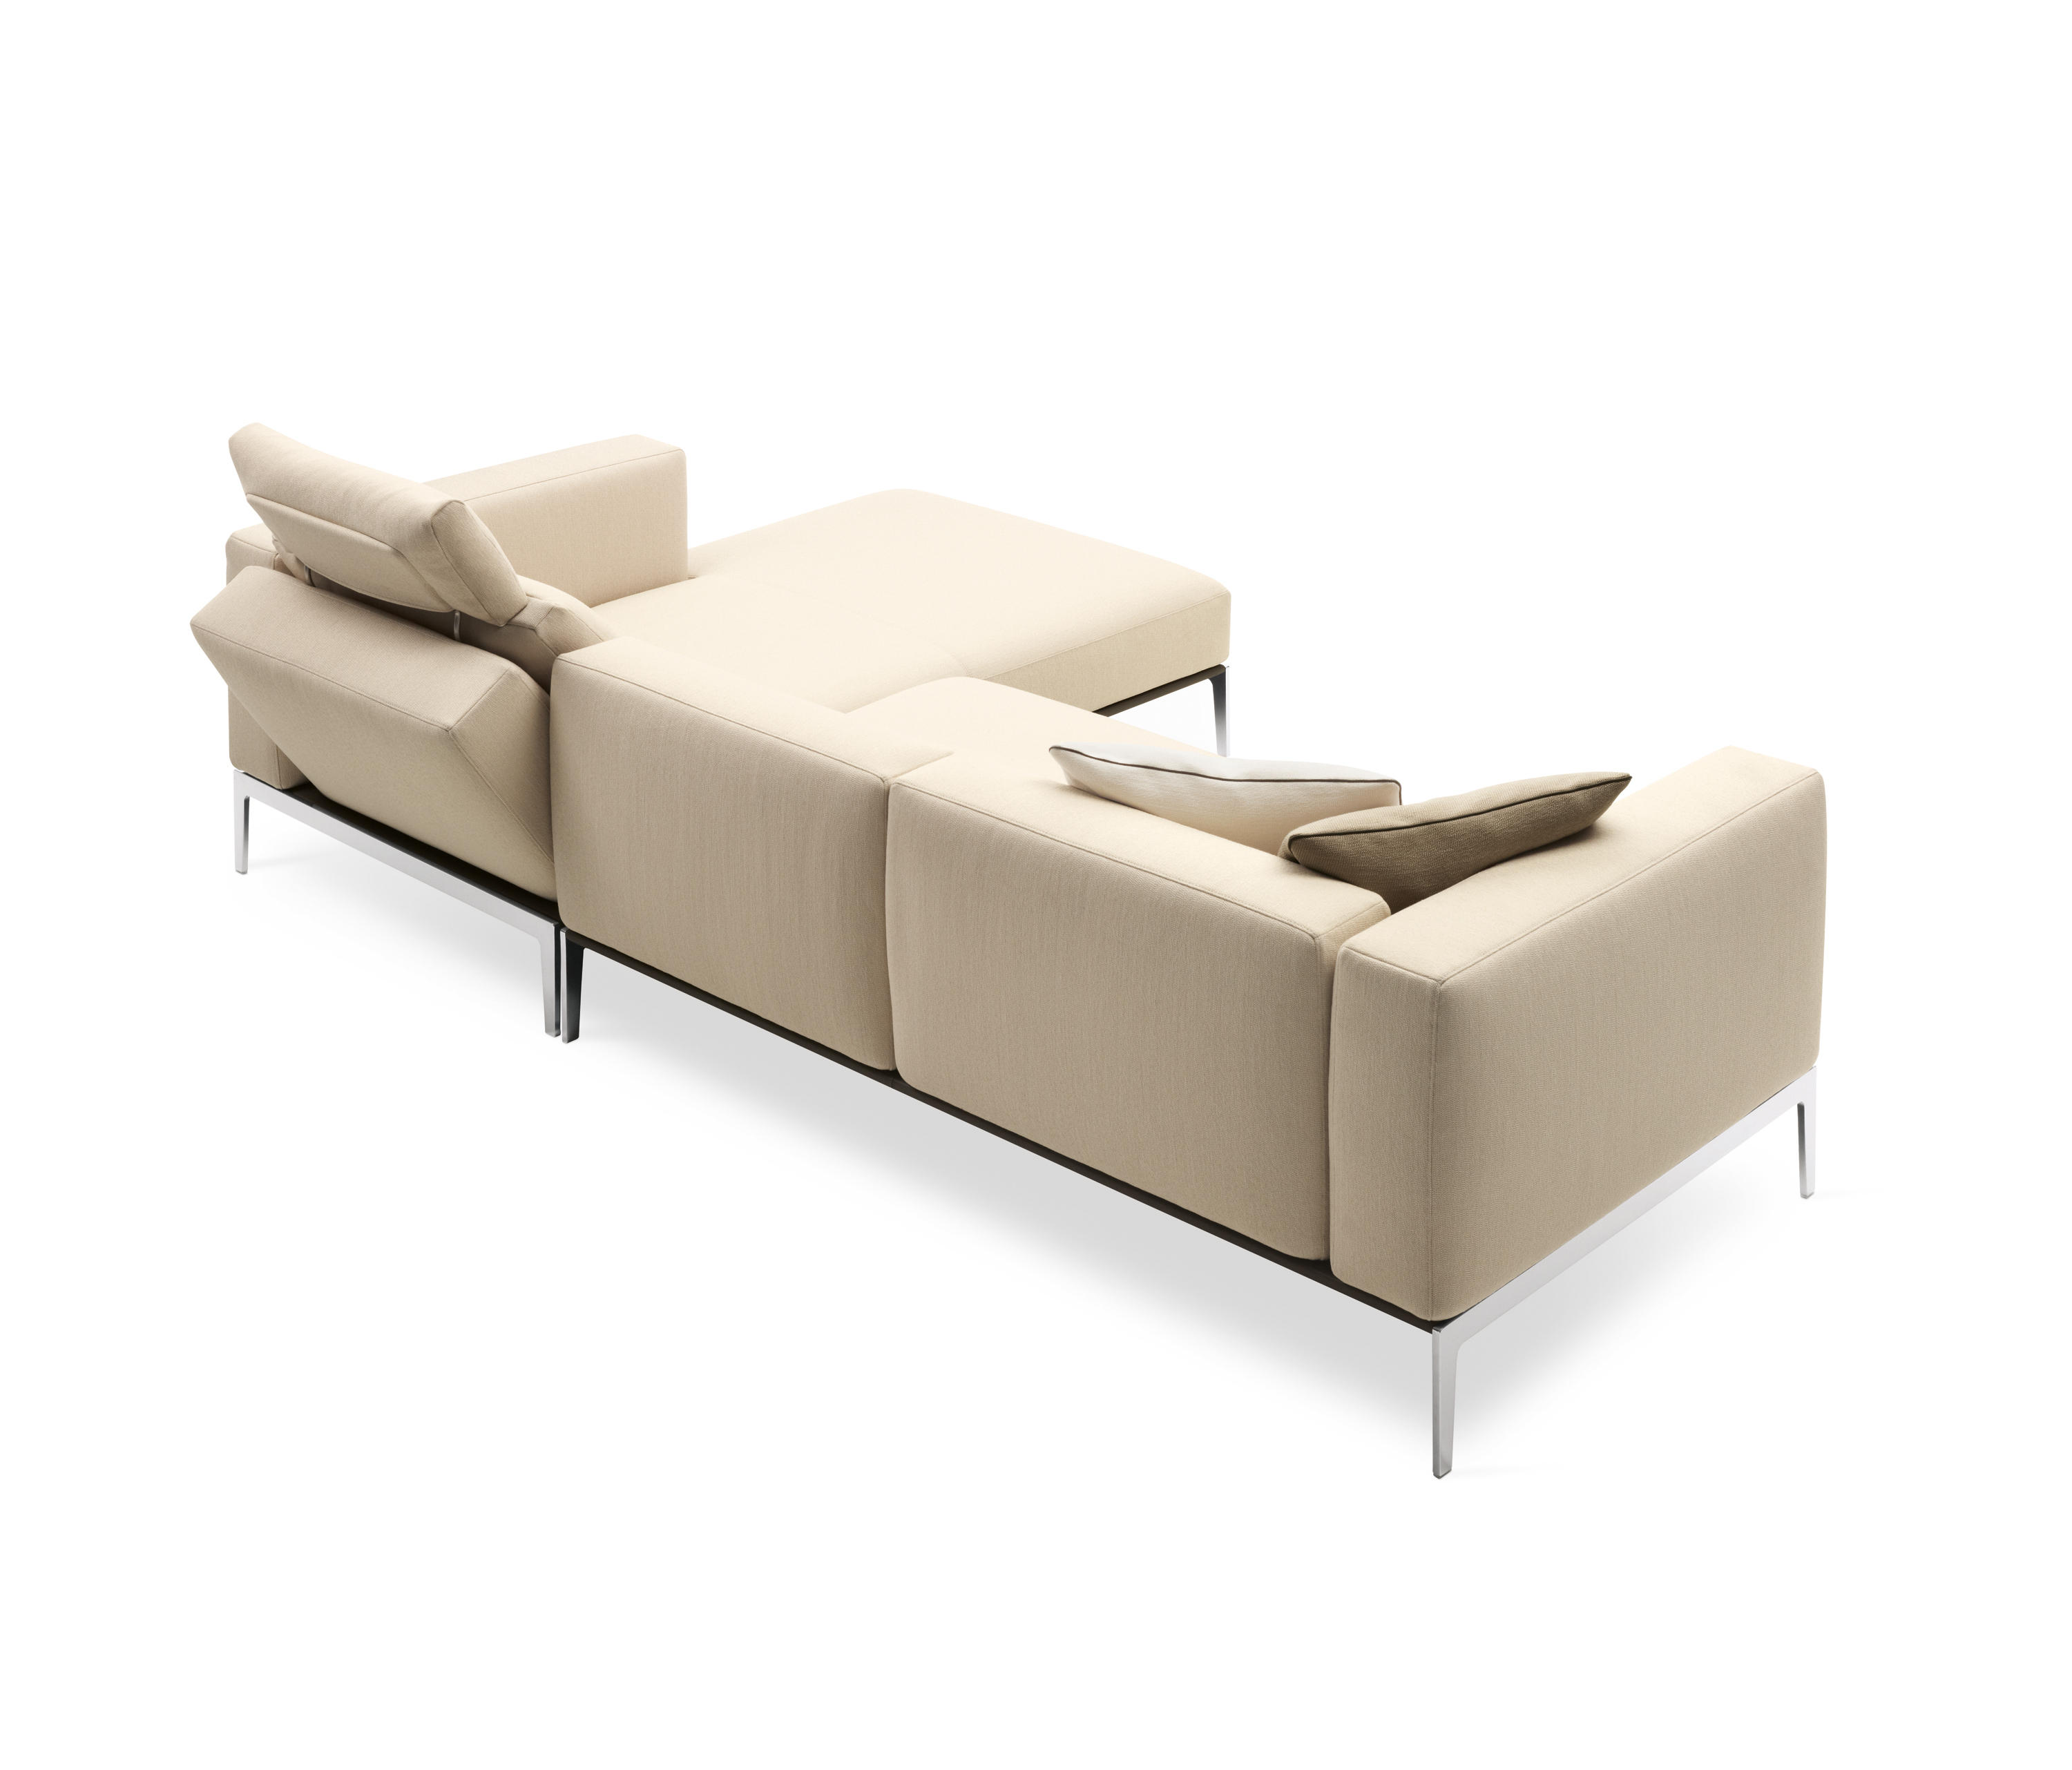 liege sofa gallery of liege sofa with liege sofa awesome liege biscuit custom slipcovers for. Black Bedroom Furniture Sets. Home Design Ideas